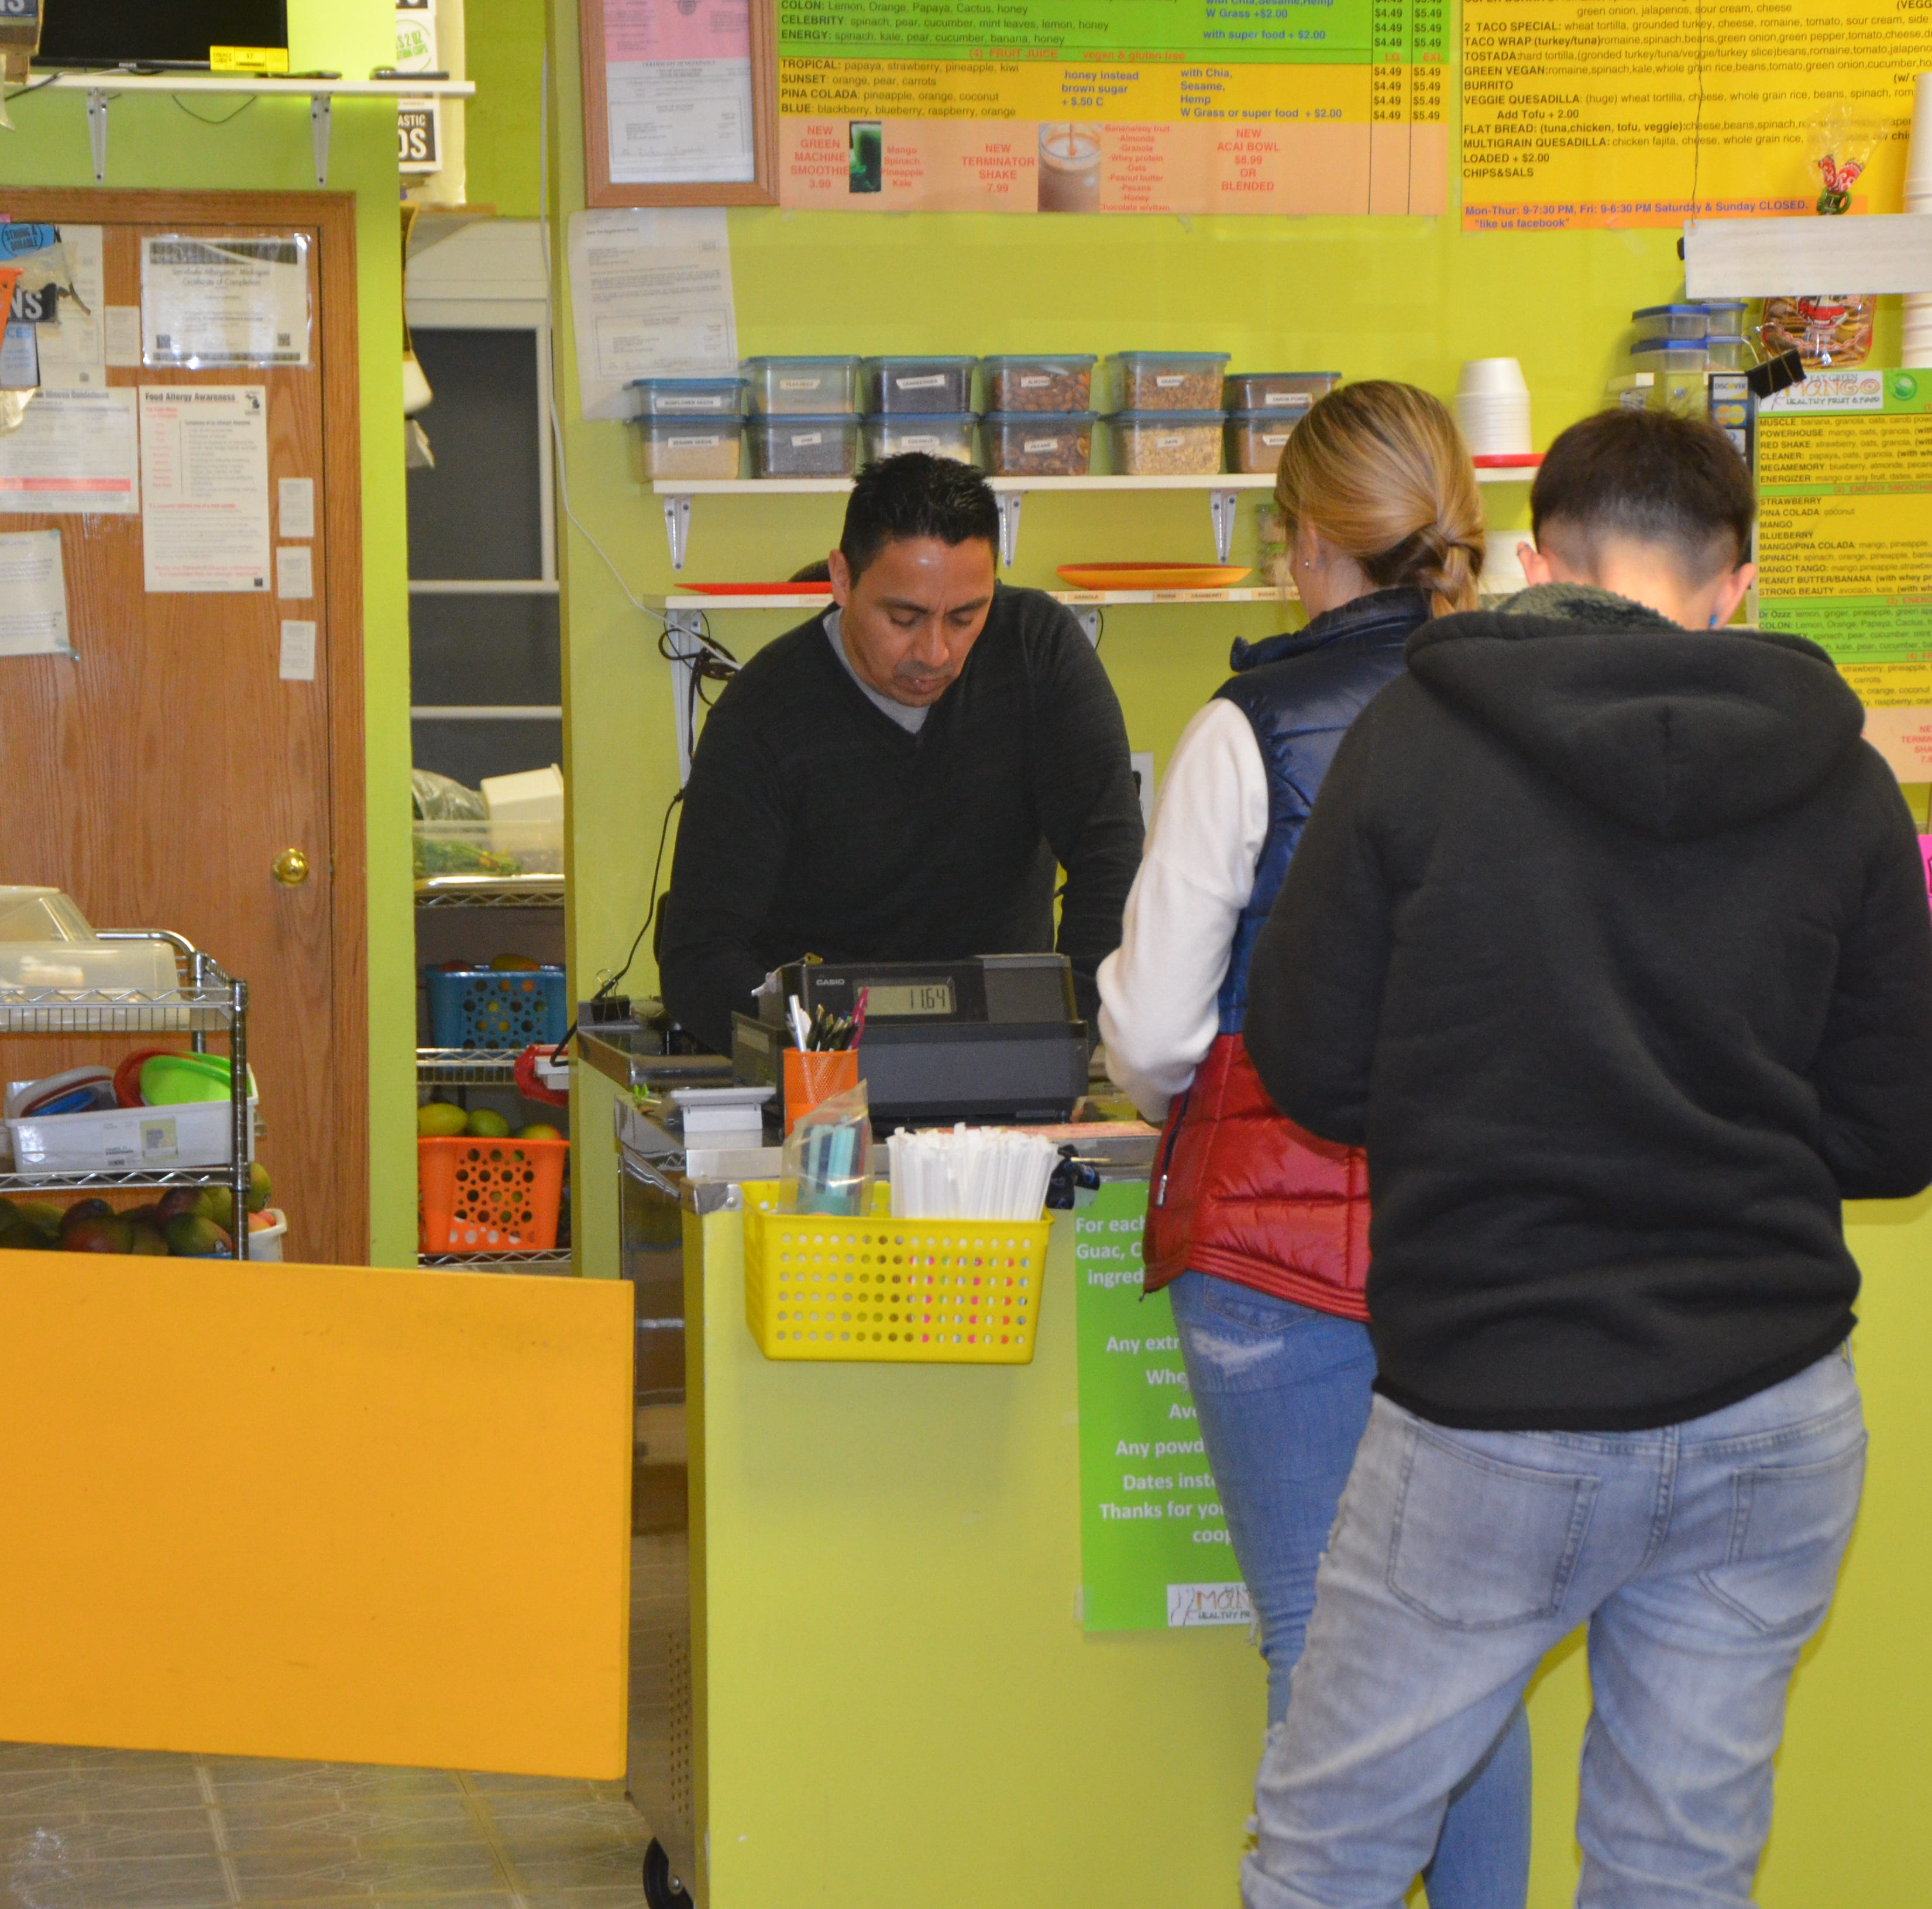 Mango Healthy Fruit and Food is expanding, opening a third location on Beckley Road